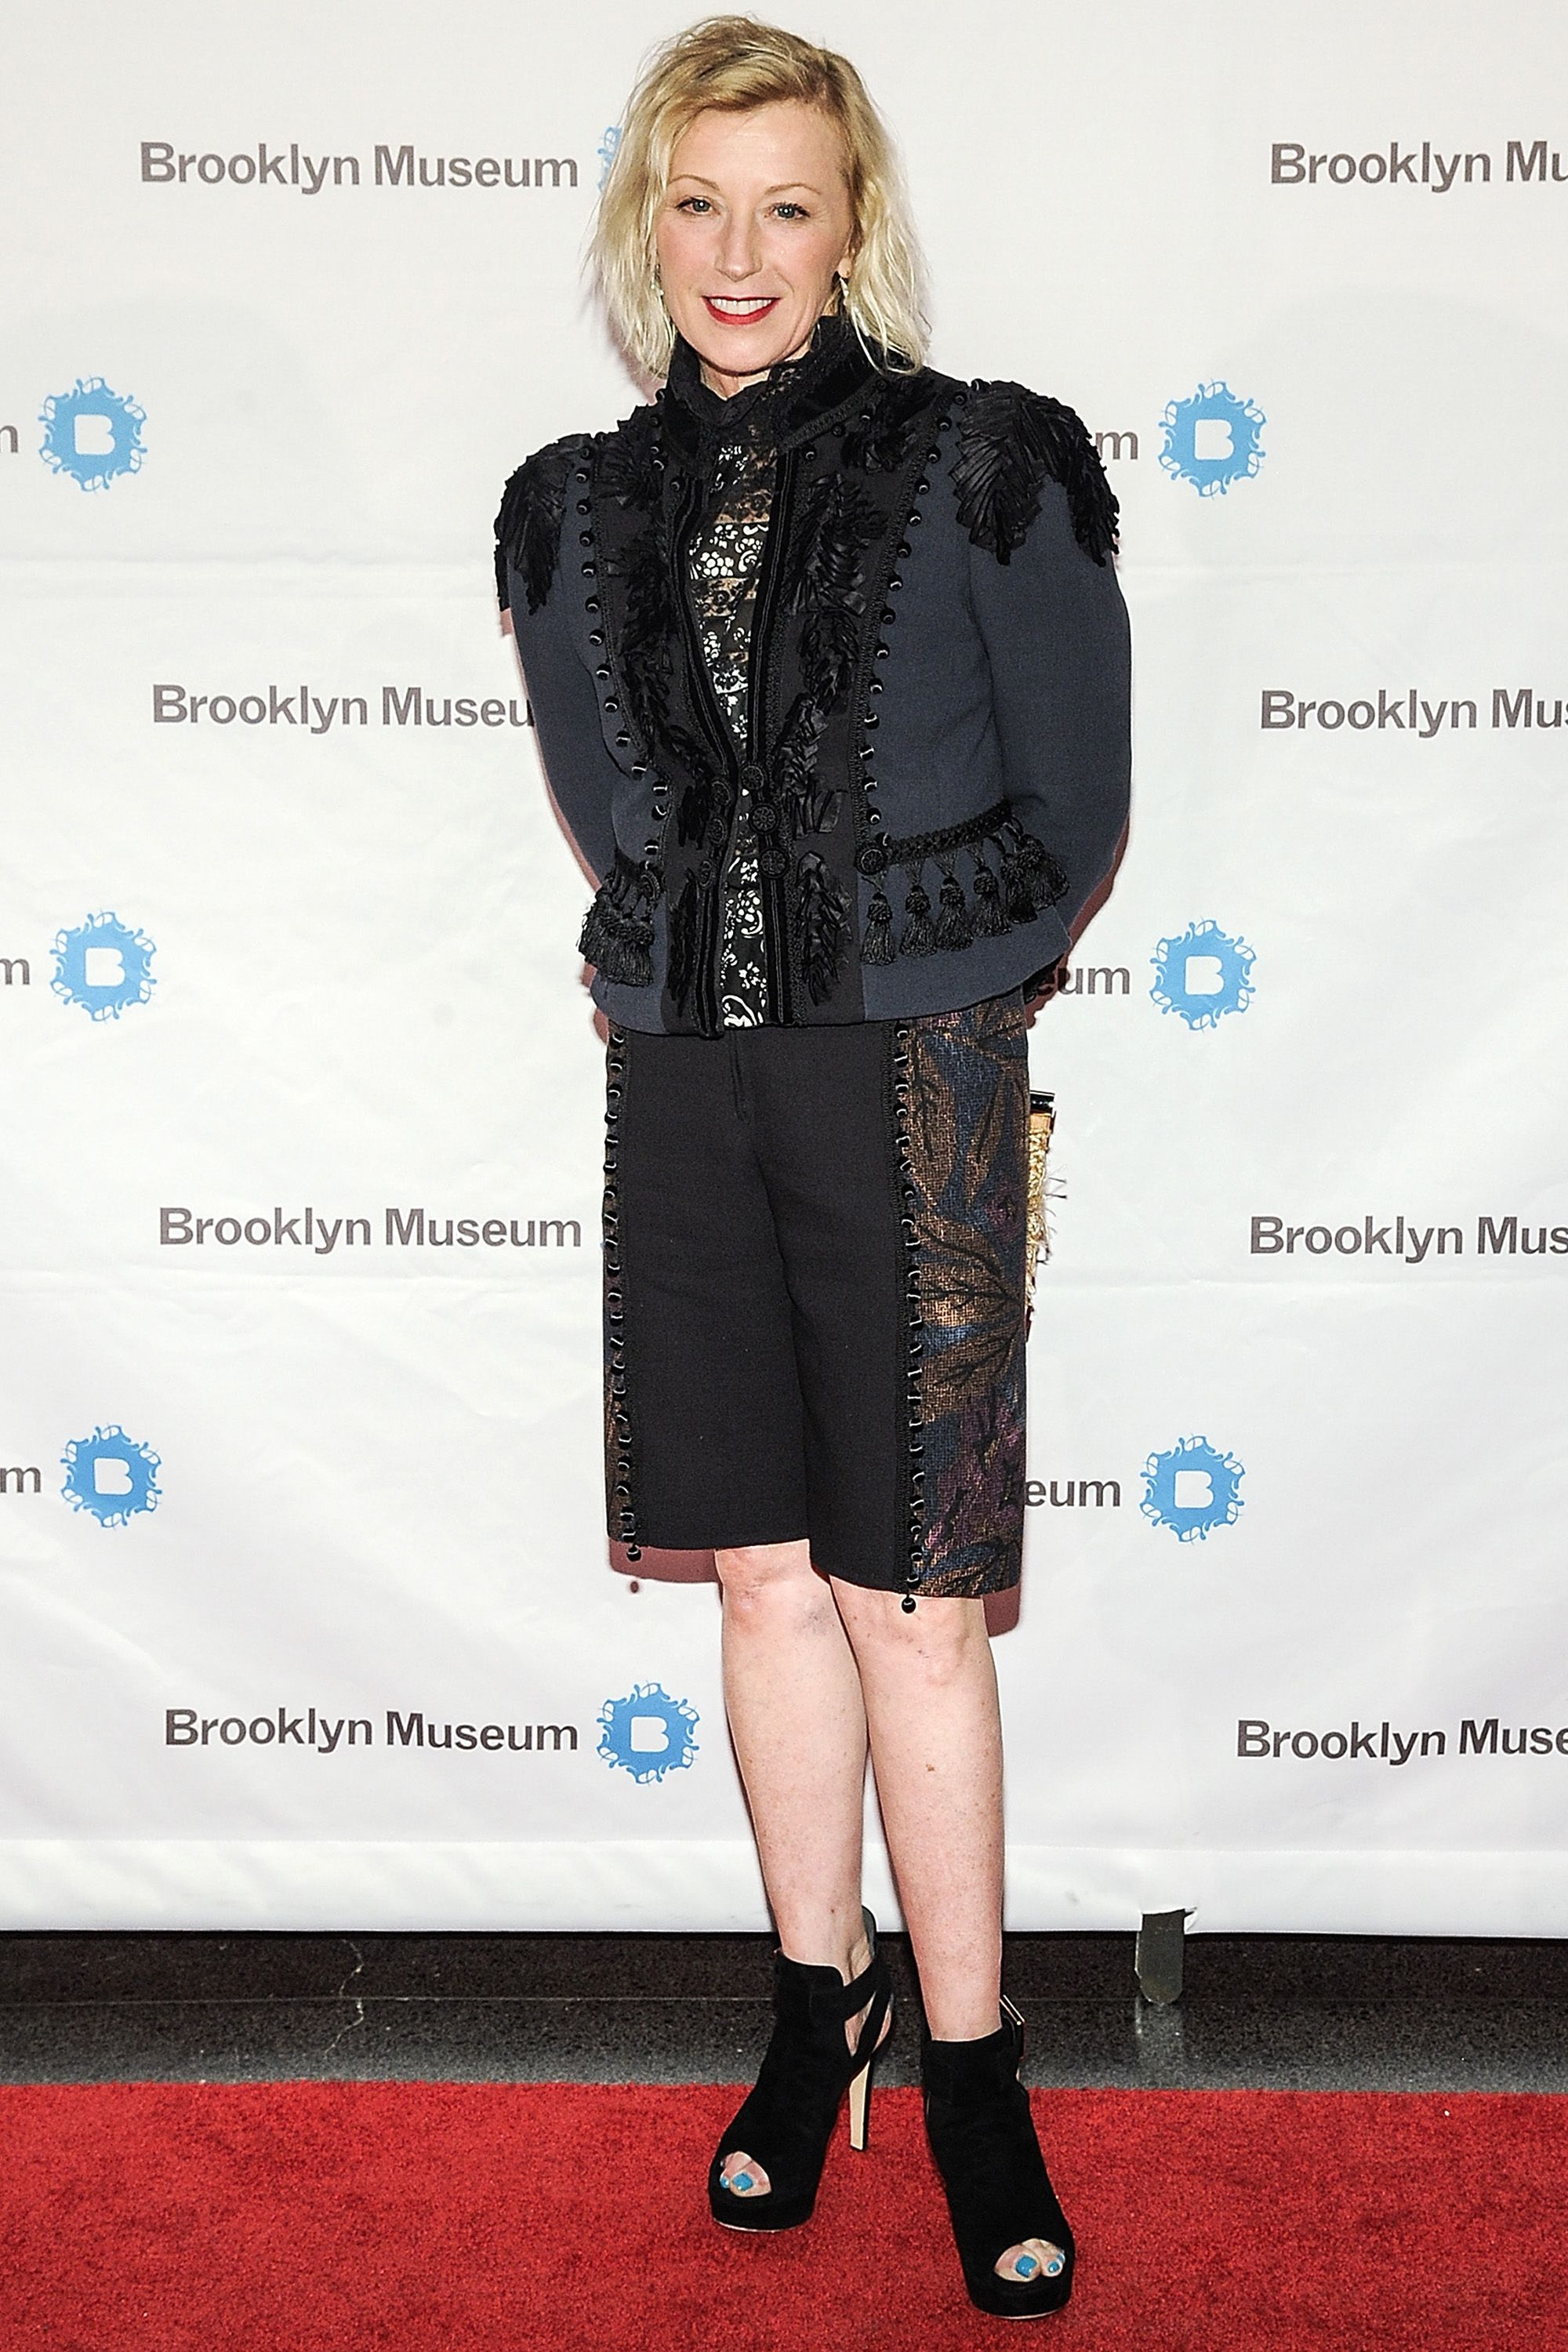 NEW YORK, NY - APRIL 15:  Cindy Sherman attends the 5th Annual Brooklyn Artists Ball at Brooklyn Museum on April 15, 2015 in New York City.  (Photo by Daniel Zuchnik/WireImage)